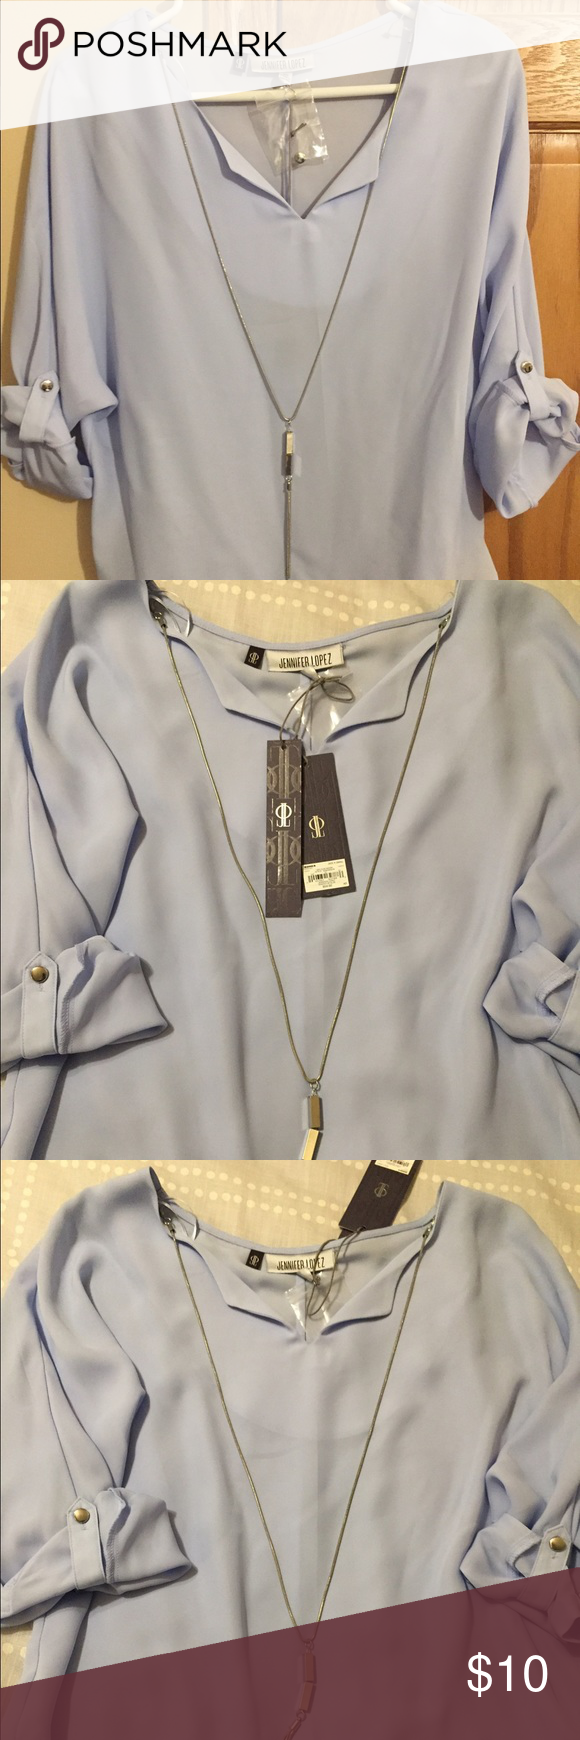 NEW Jennifer Lopez Blouse w/ Removable Necklace NWT Size XSmall Blouse in Lilac Blue. Soft polyester material with removable necklace. Jennifer Lopez Tops Blouses